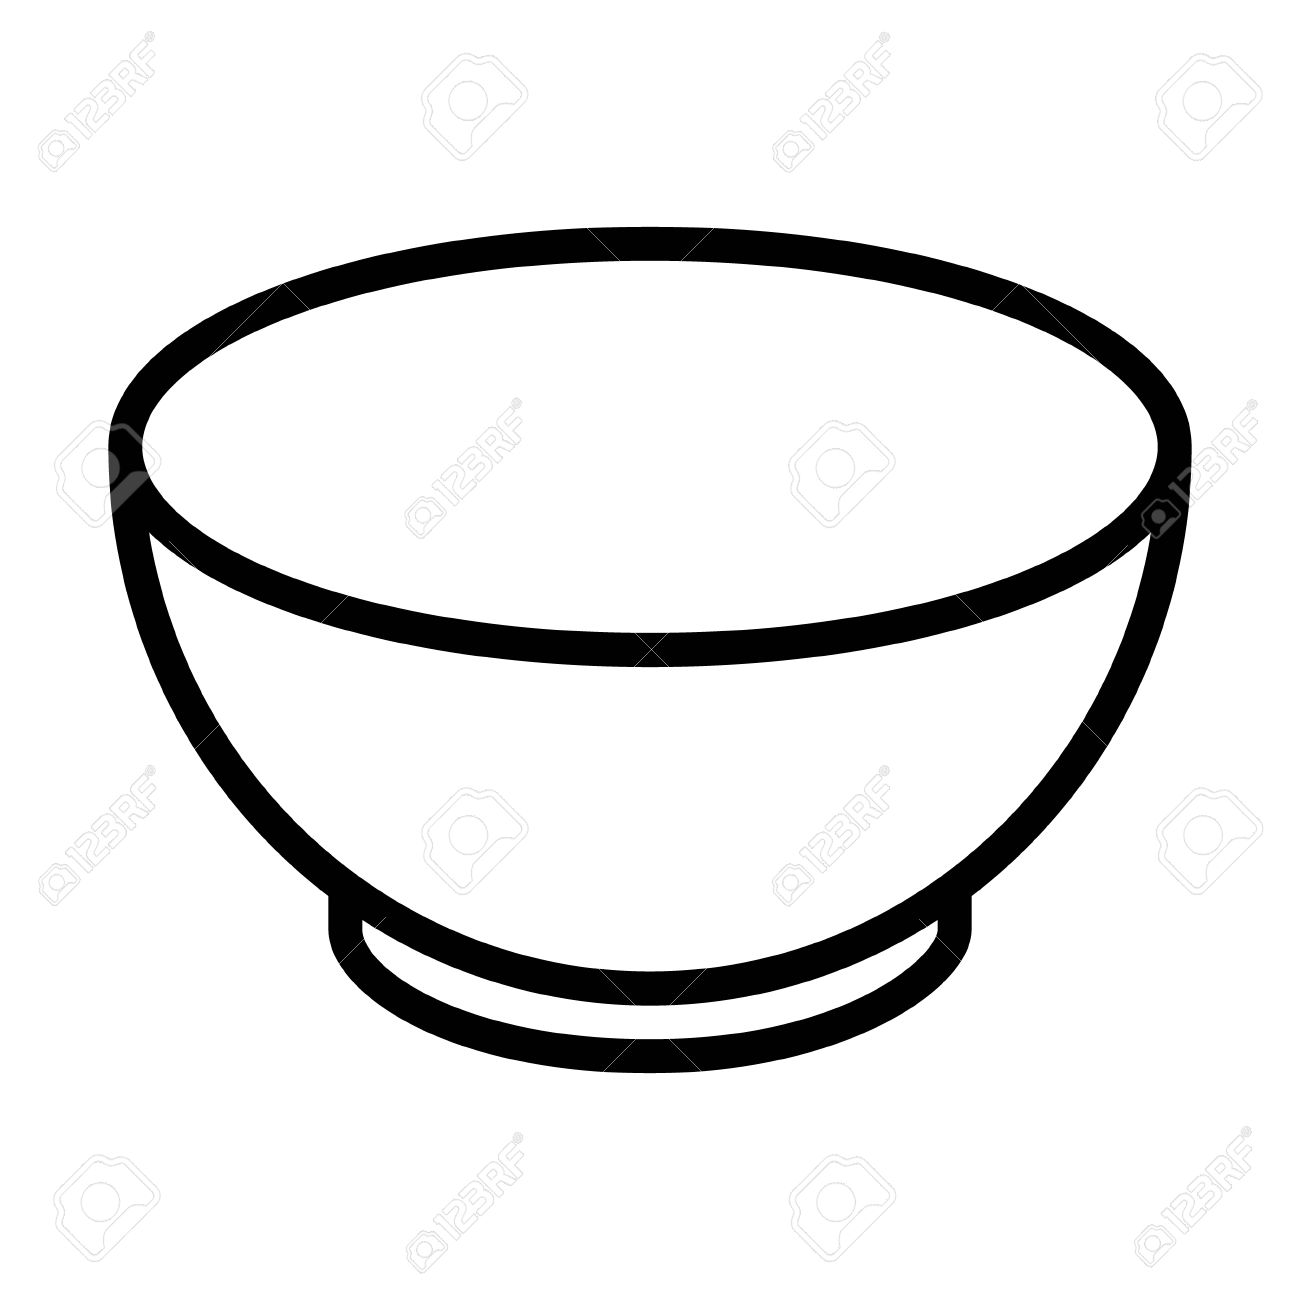 soup bowl dishware line art icon for food apps and websites royalty rh 123rf com  soup bowl clipart black and white